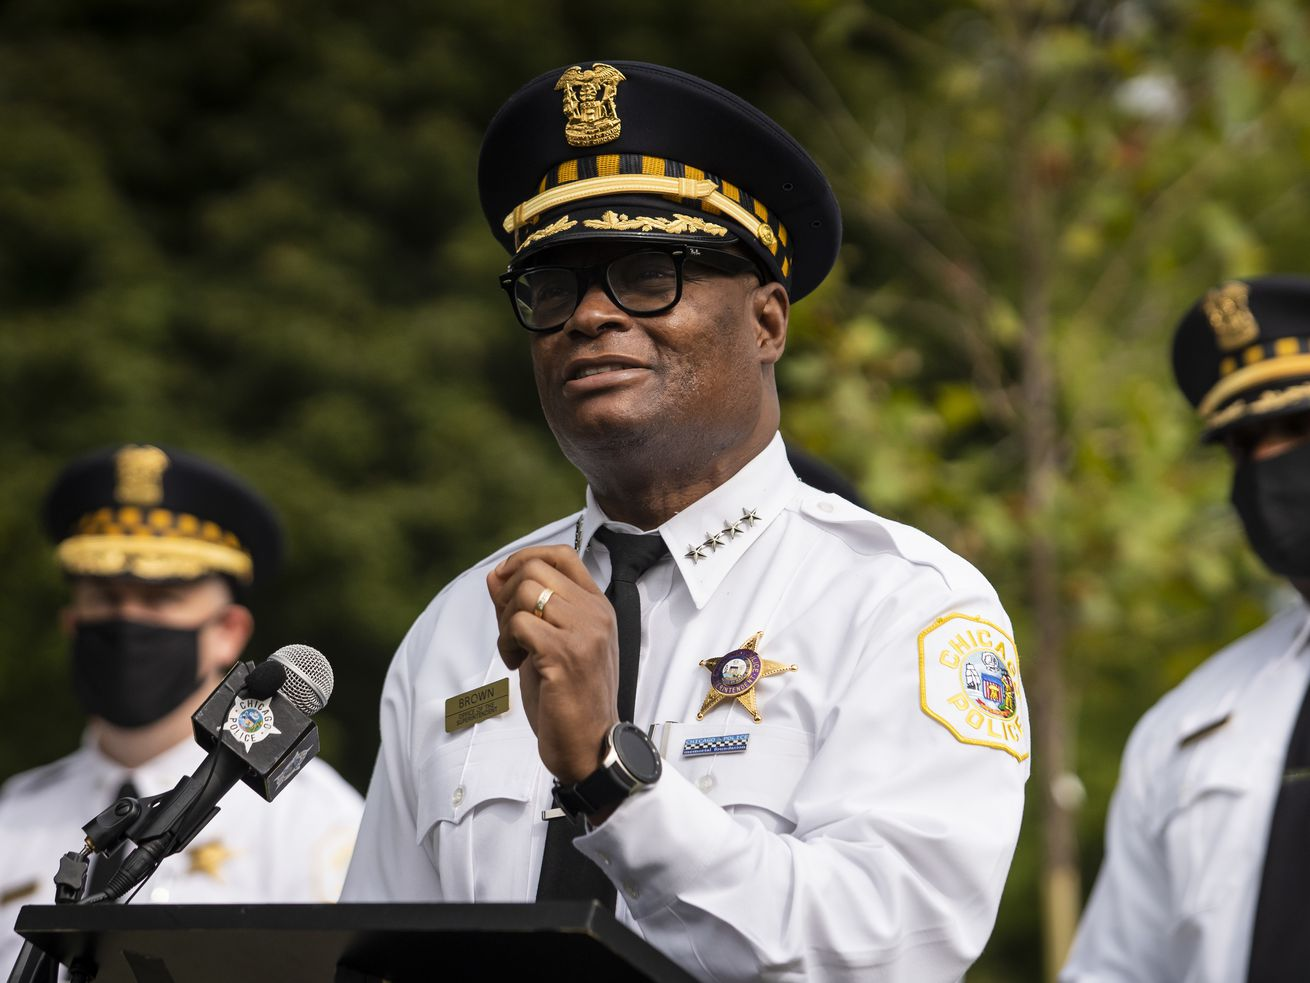 Police Supt. David Brown and his department have been quietly taking care of business and deserve our appreciation.